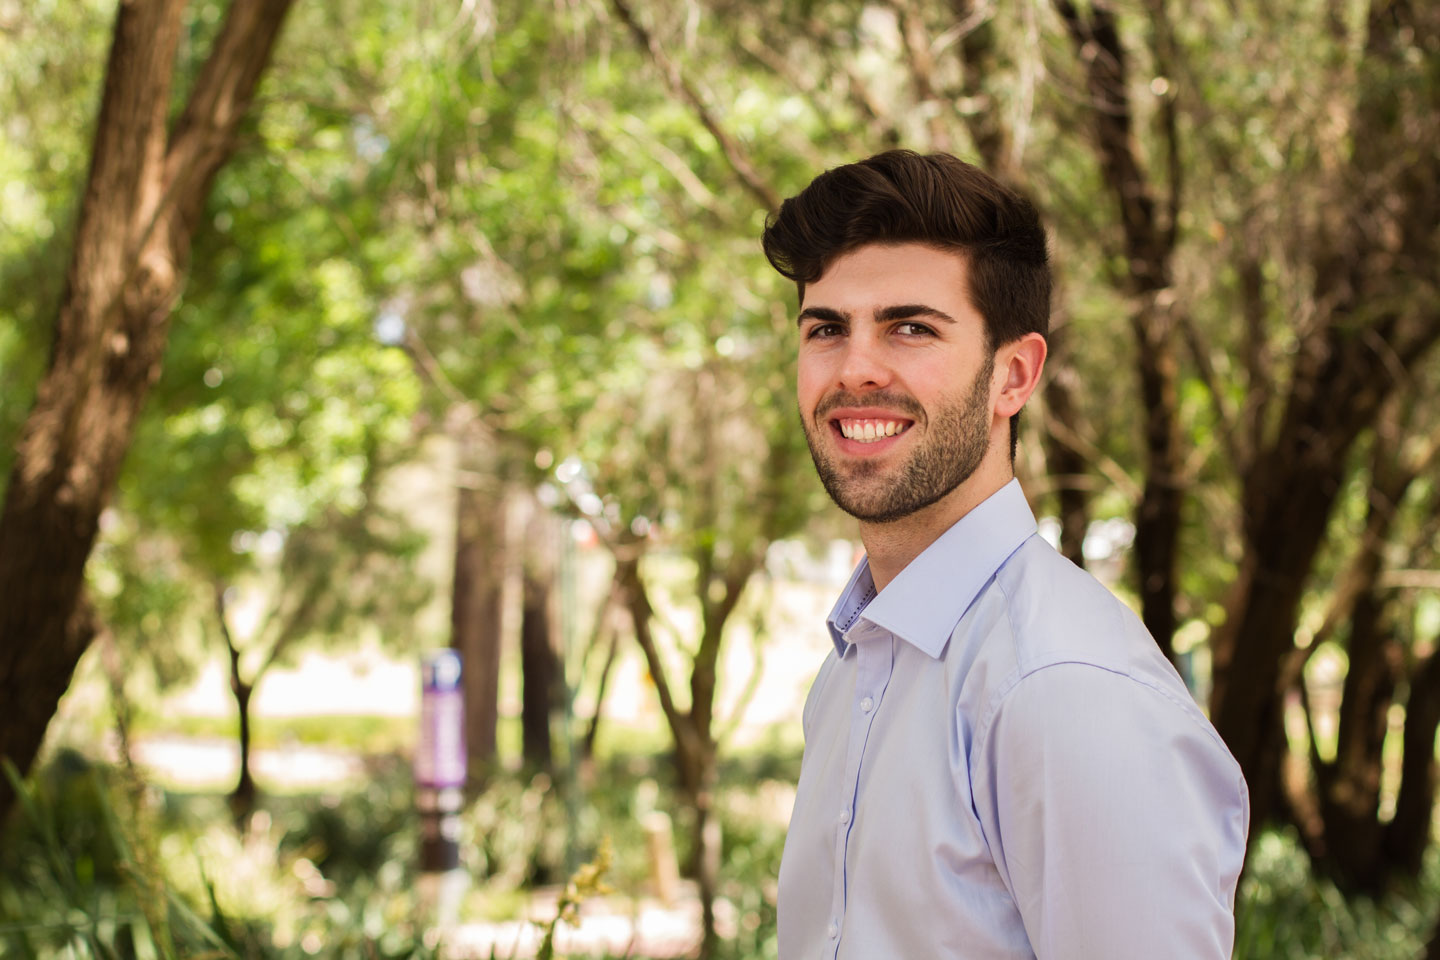 dark haired curtin student rob di giovanni standing against an out of focus background of green and brown trees